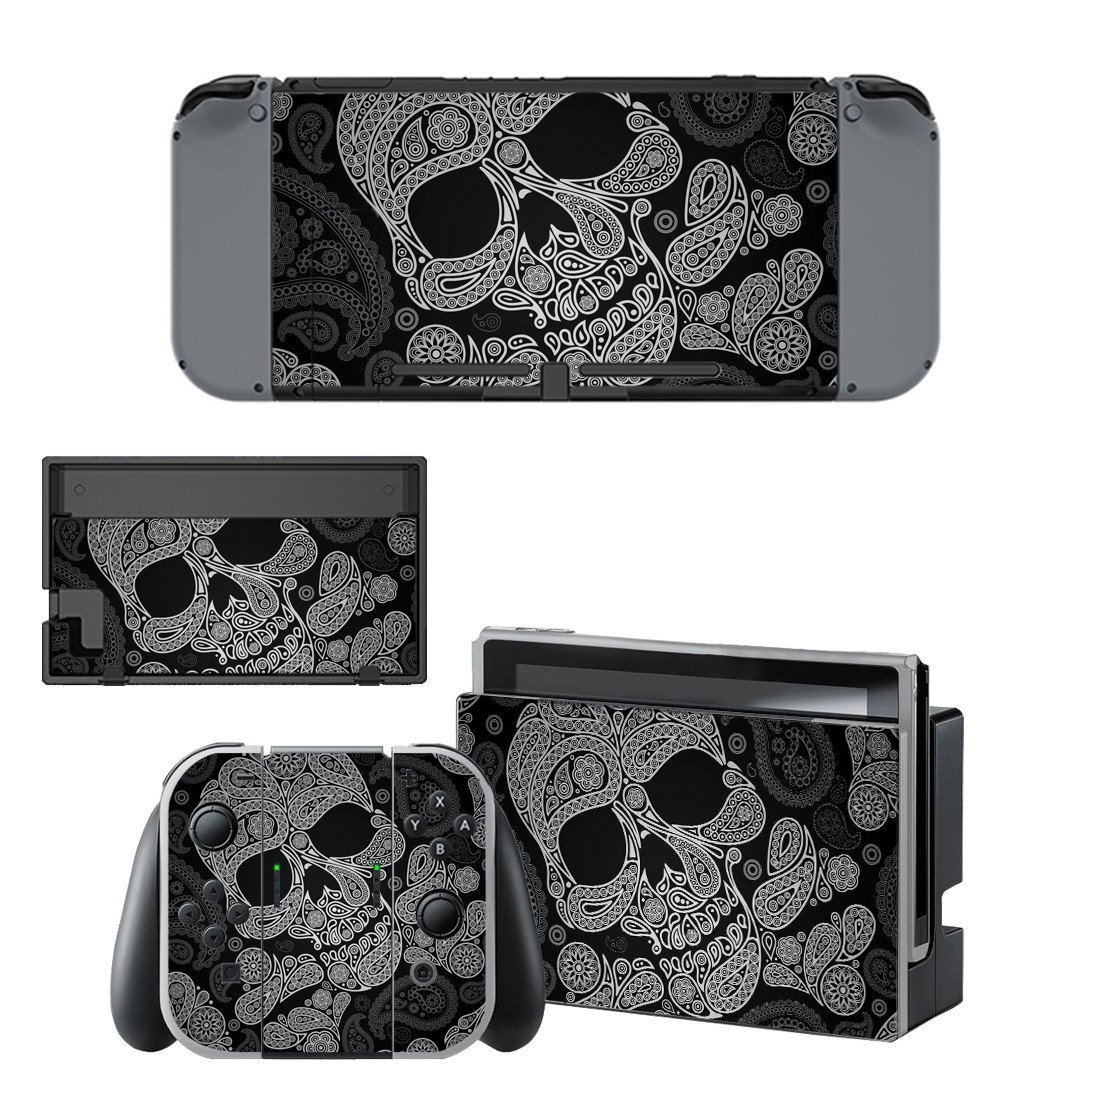 Floral skull decal for Nintendo switch console sticker skin